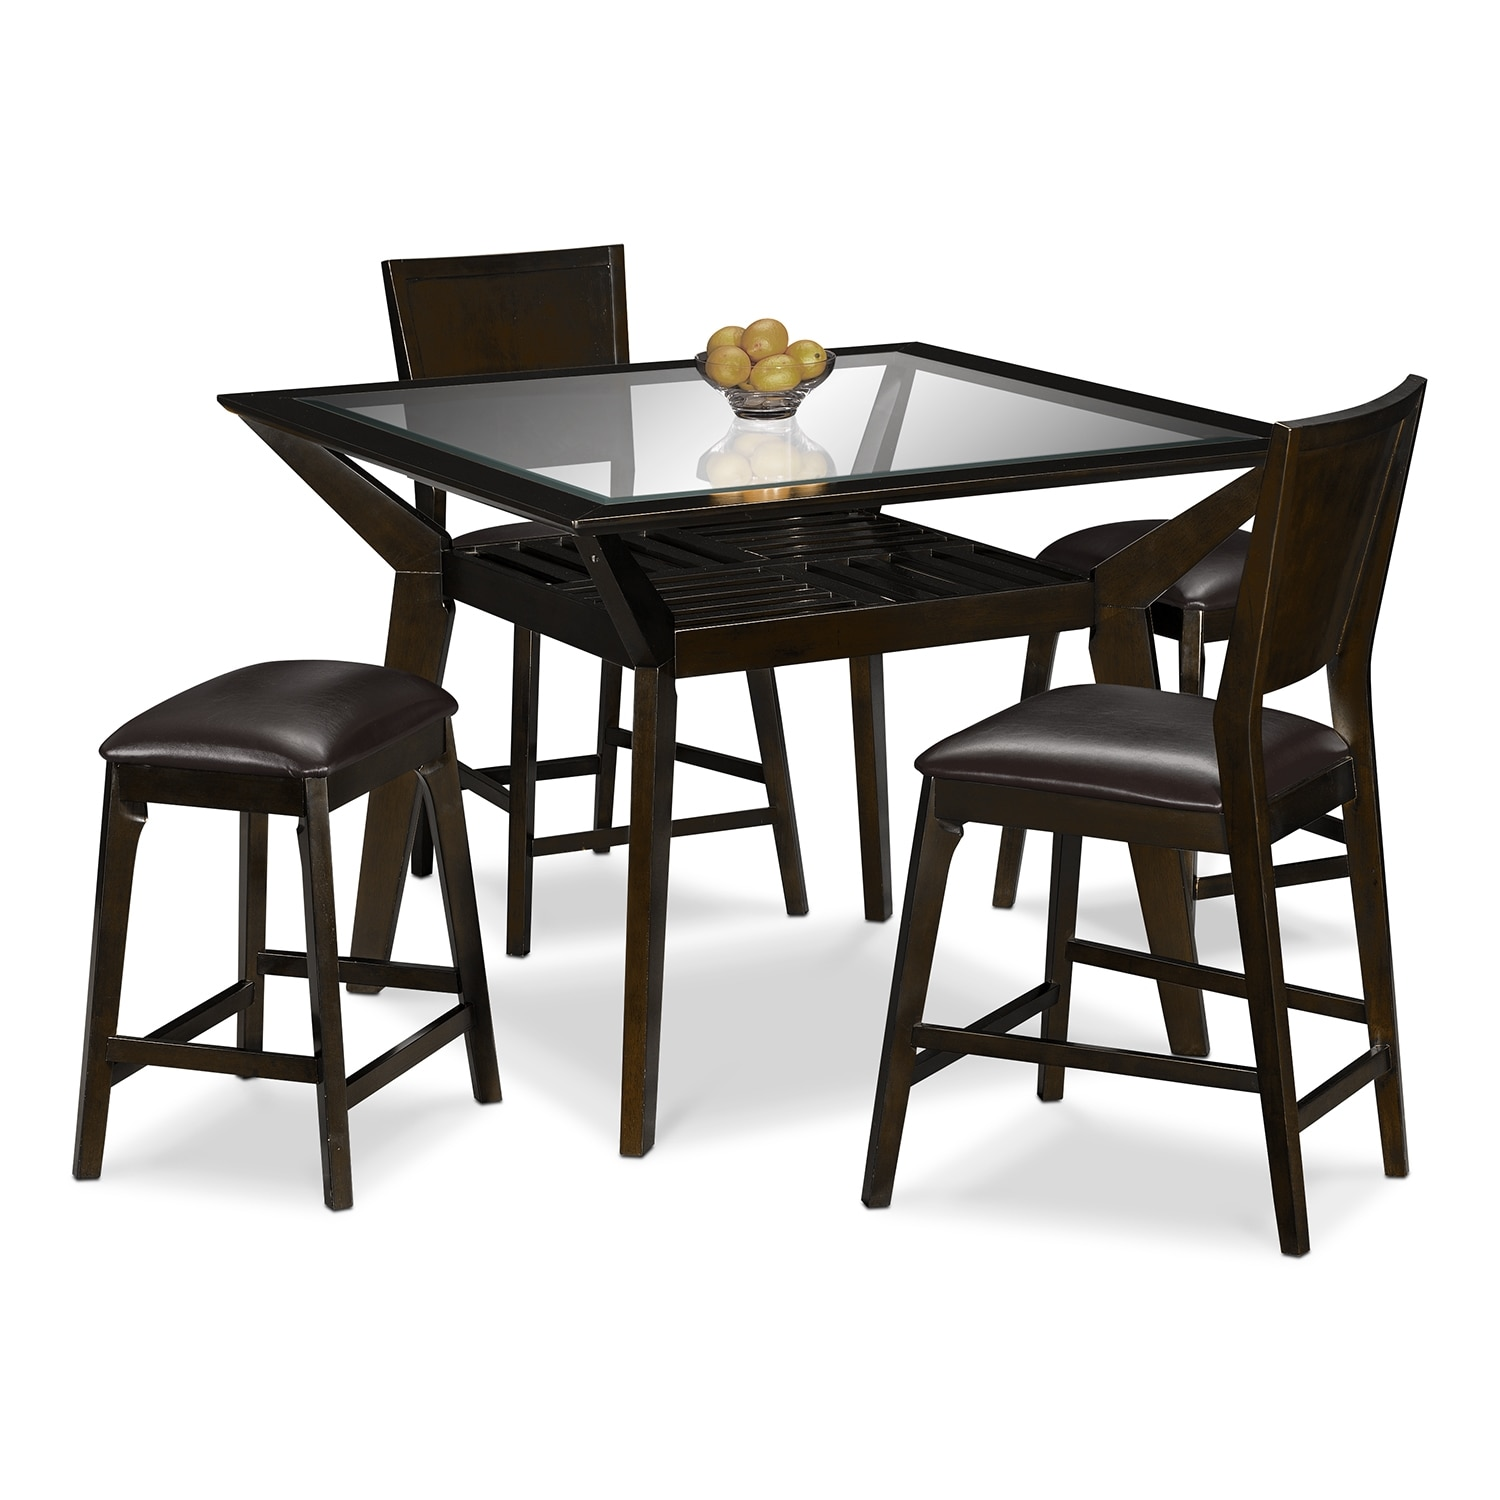 Mystic Counter Height Table 2 Chairs And 2 Backless Stools Merlot And Choc